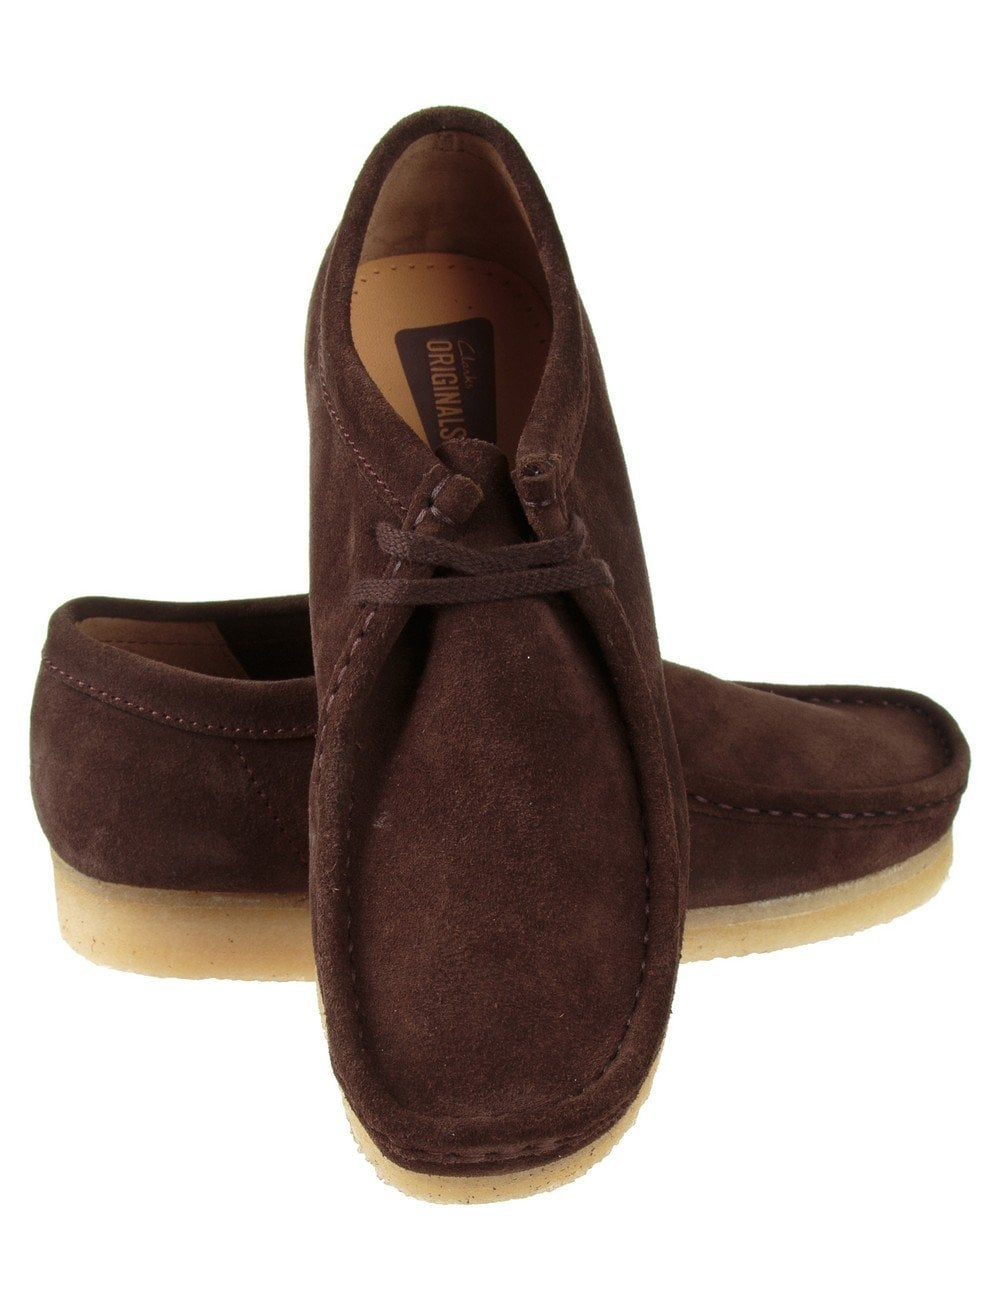 aesthetic appearance best choice favorable price Wallabee Shoes - Dark Brown Suede